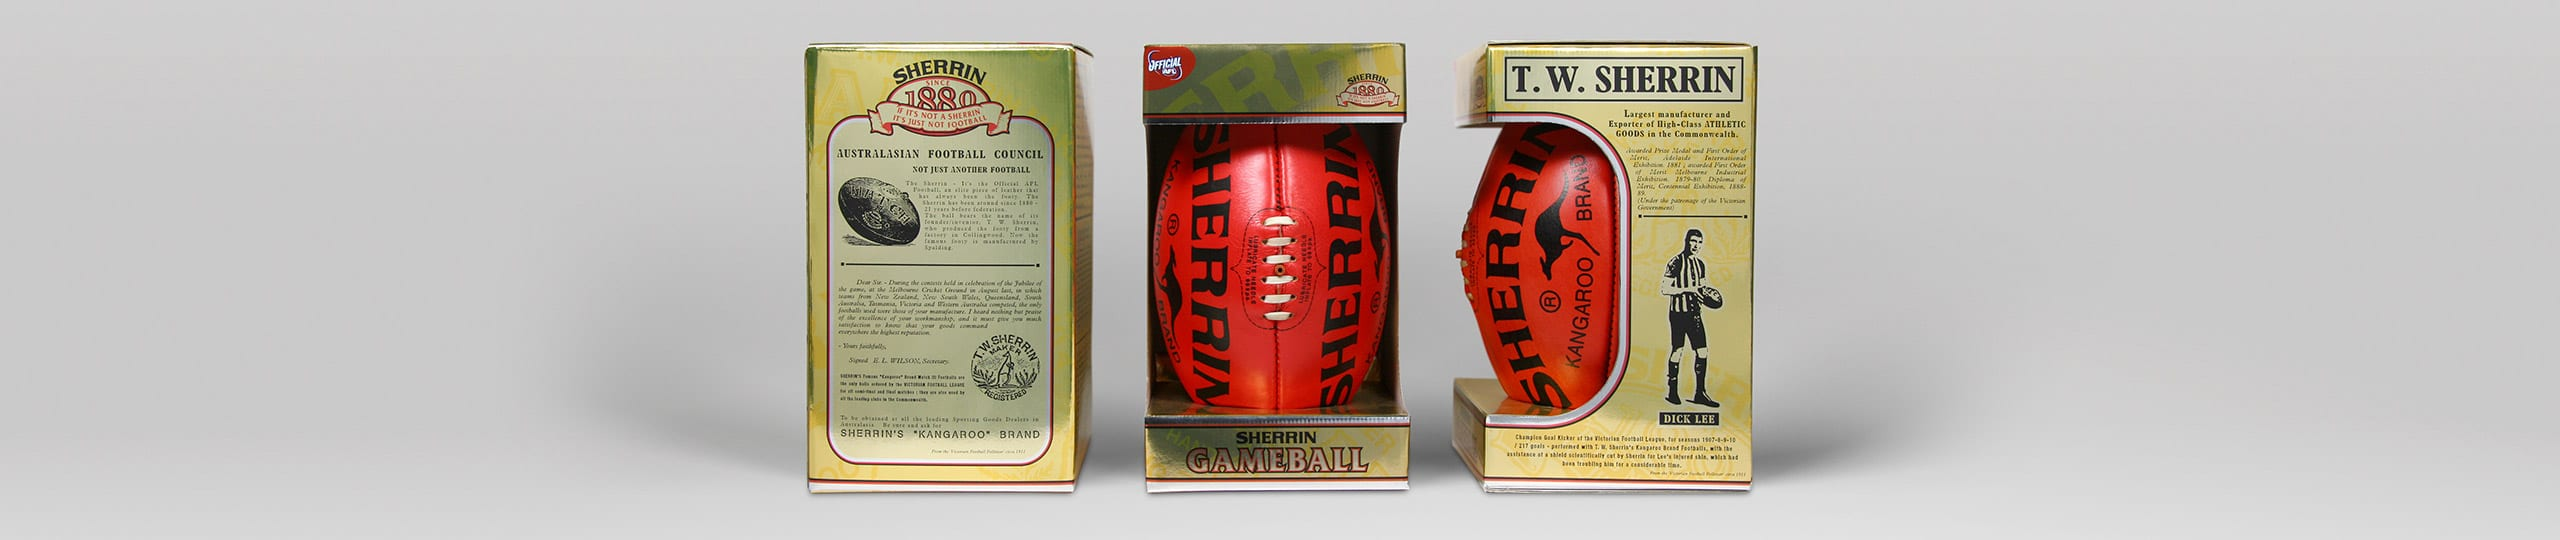 Sherrin Packaging Design Brand Strategy Marketing Campaign Brand Design